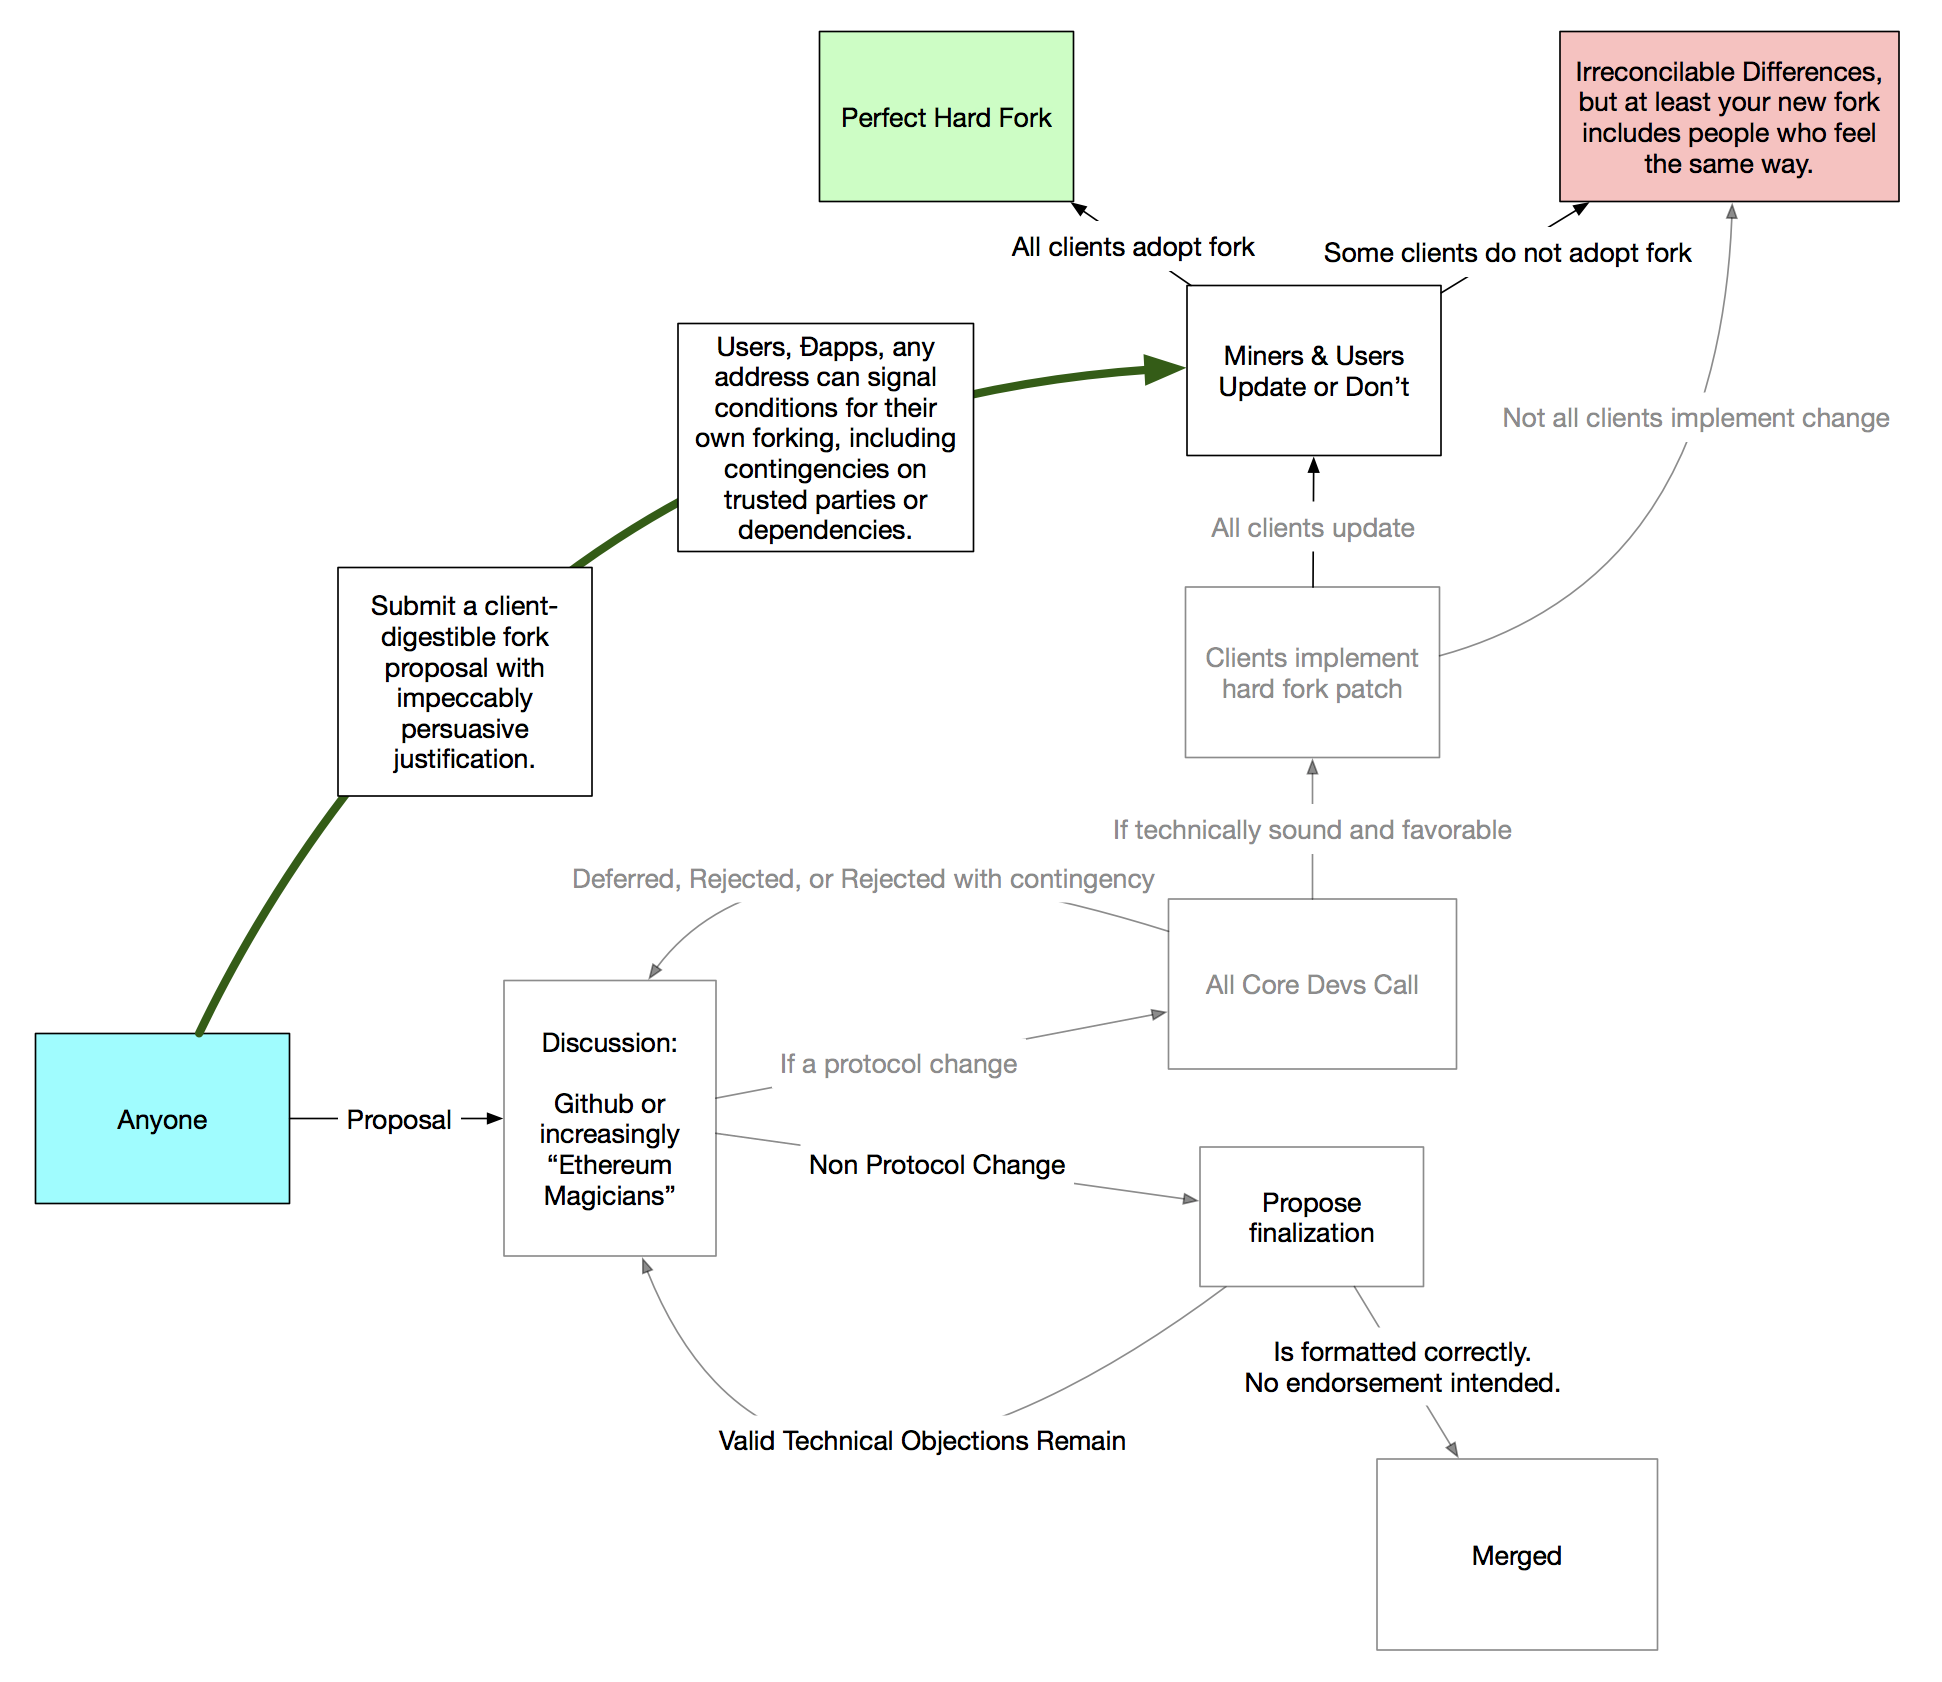 Here Is A Flow Chart Showing Which Parts Of The Current Process Could Be Bypassed